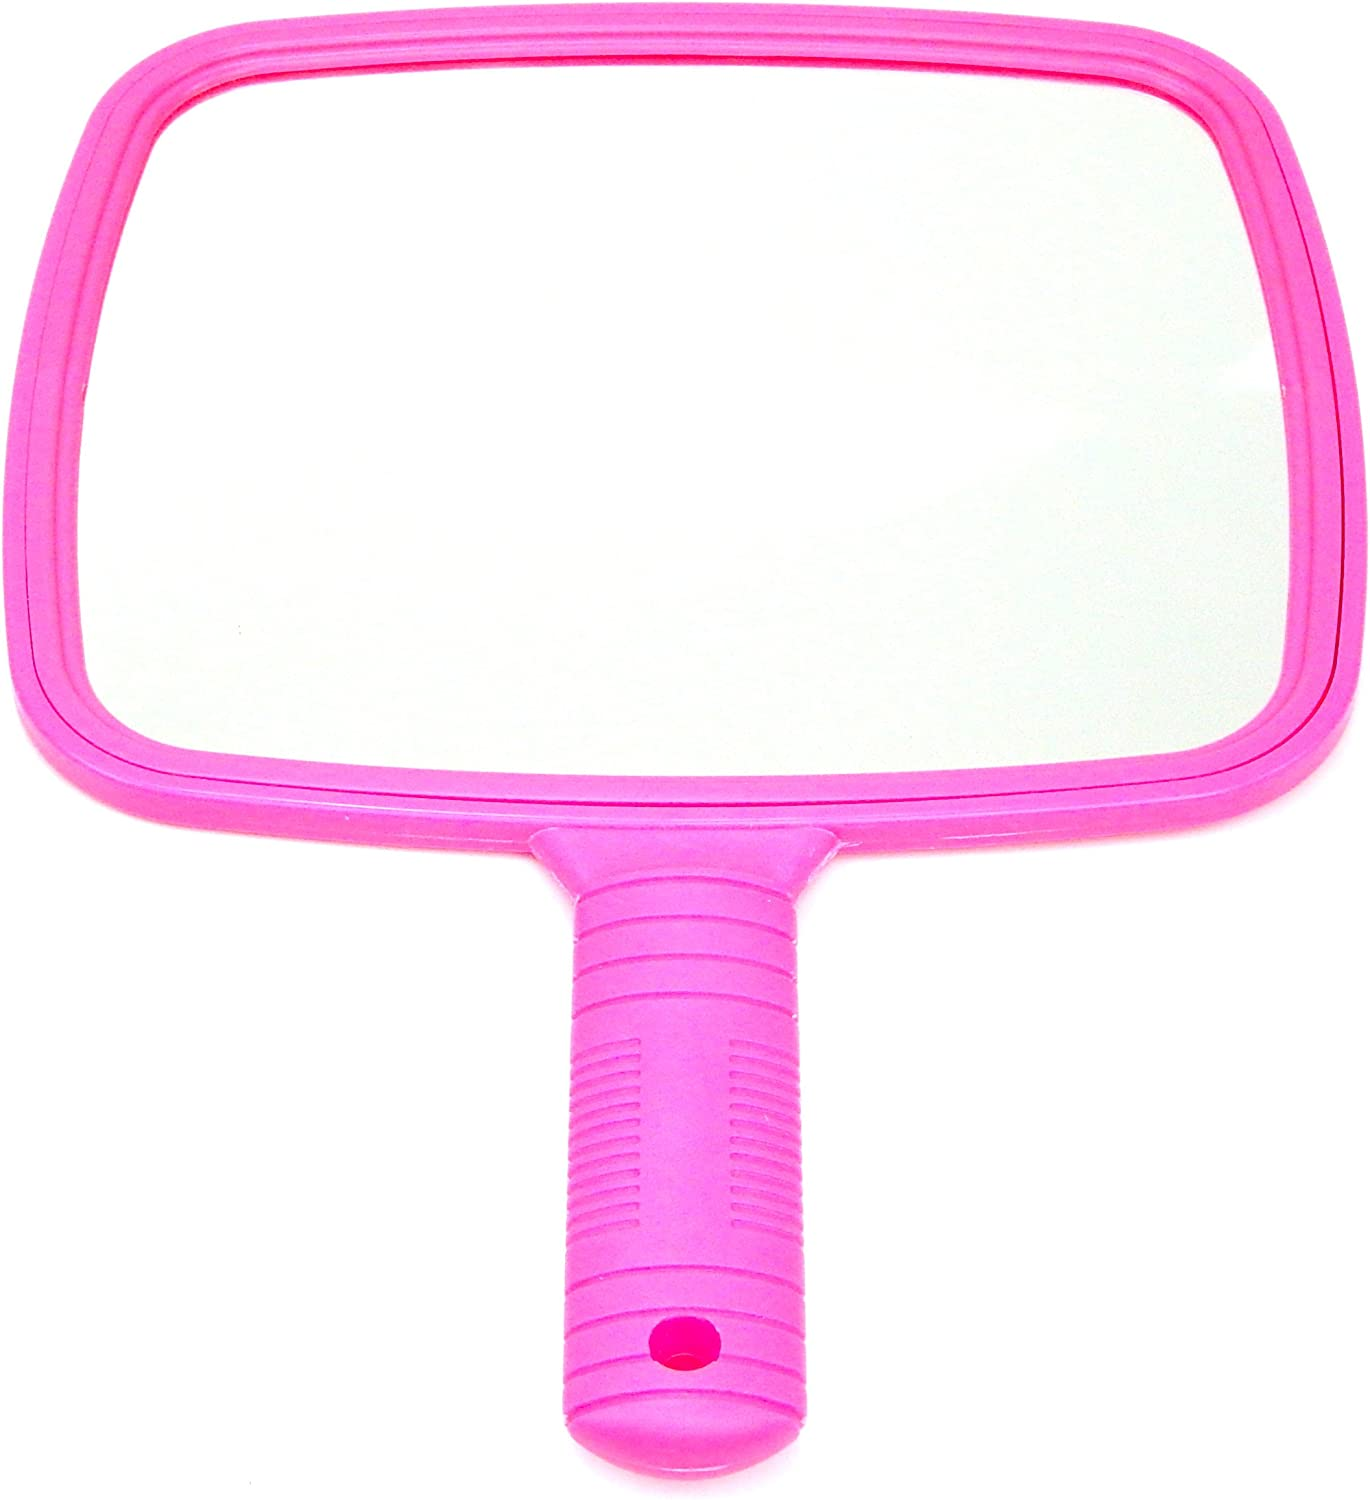 Large TV Salon Barber Manufacturer OFFicial shop Hand Cosmetic Mirror Makeup Max 53% OFF 7 Stylist Hair